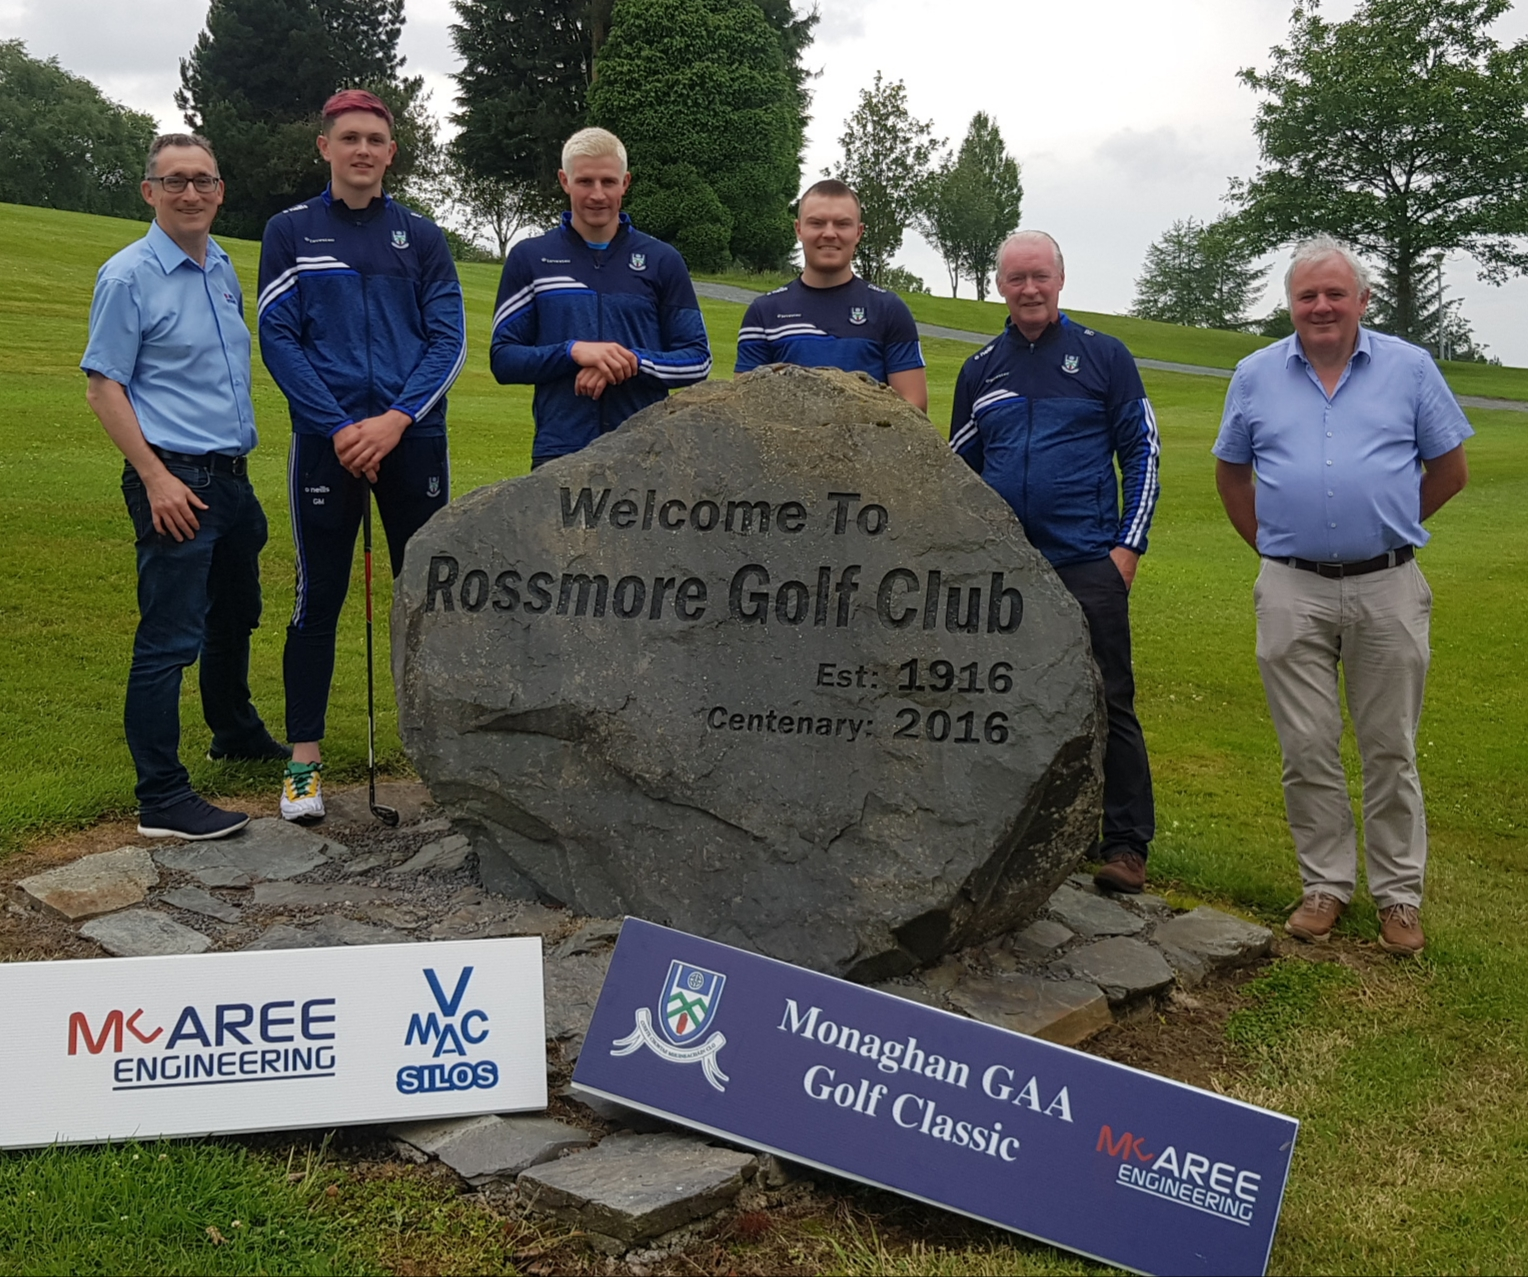 McAree Engineering Monaghan GAA Golf Classic Tees off on the 24th & 25th of July